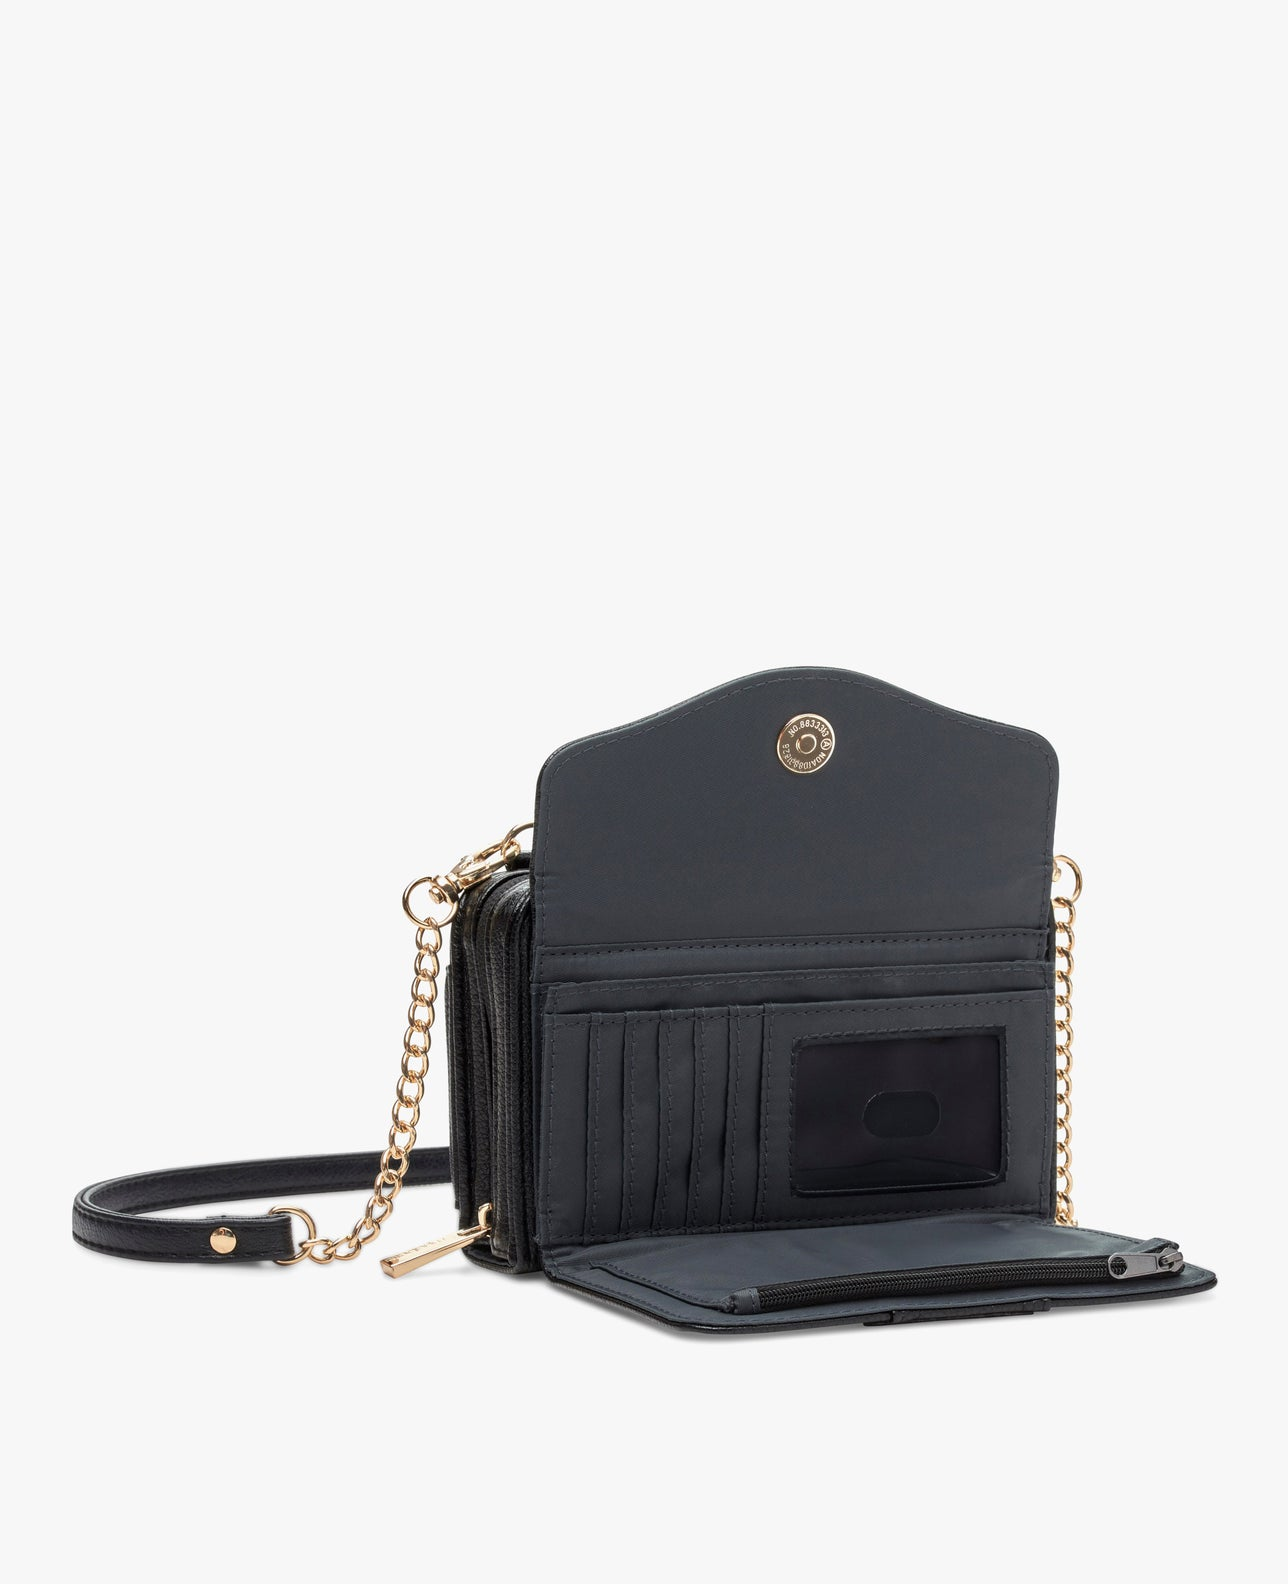 color:black with gold hardware